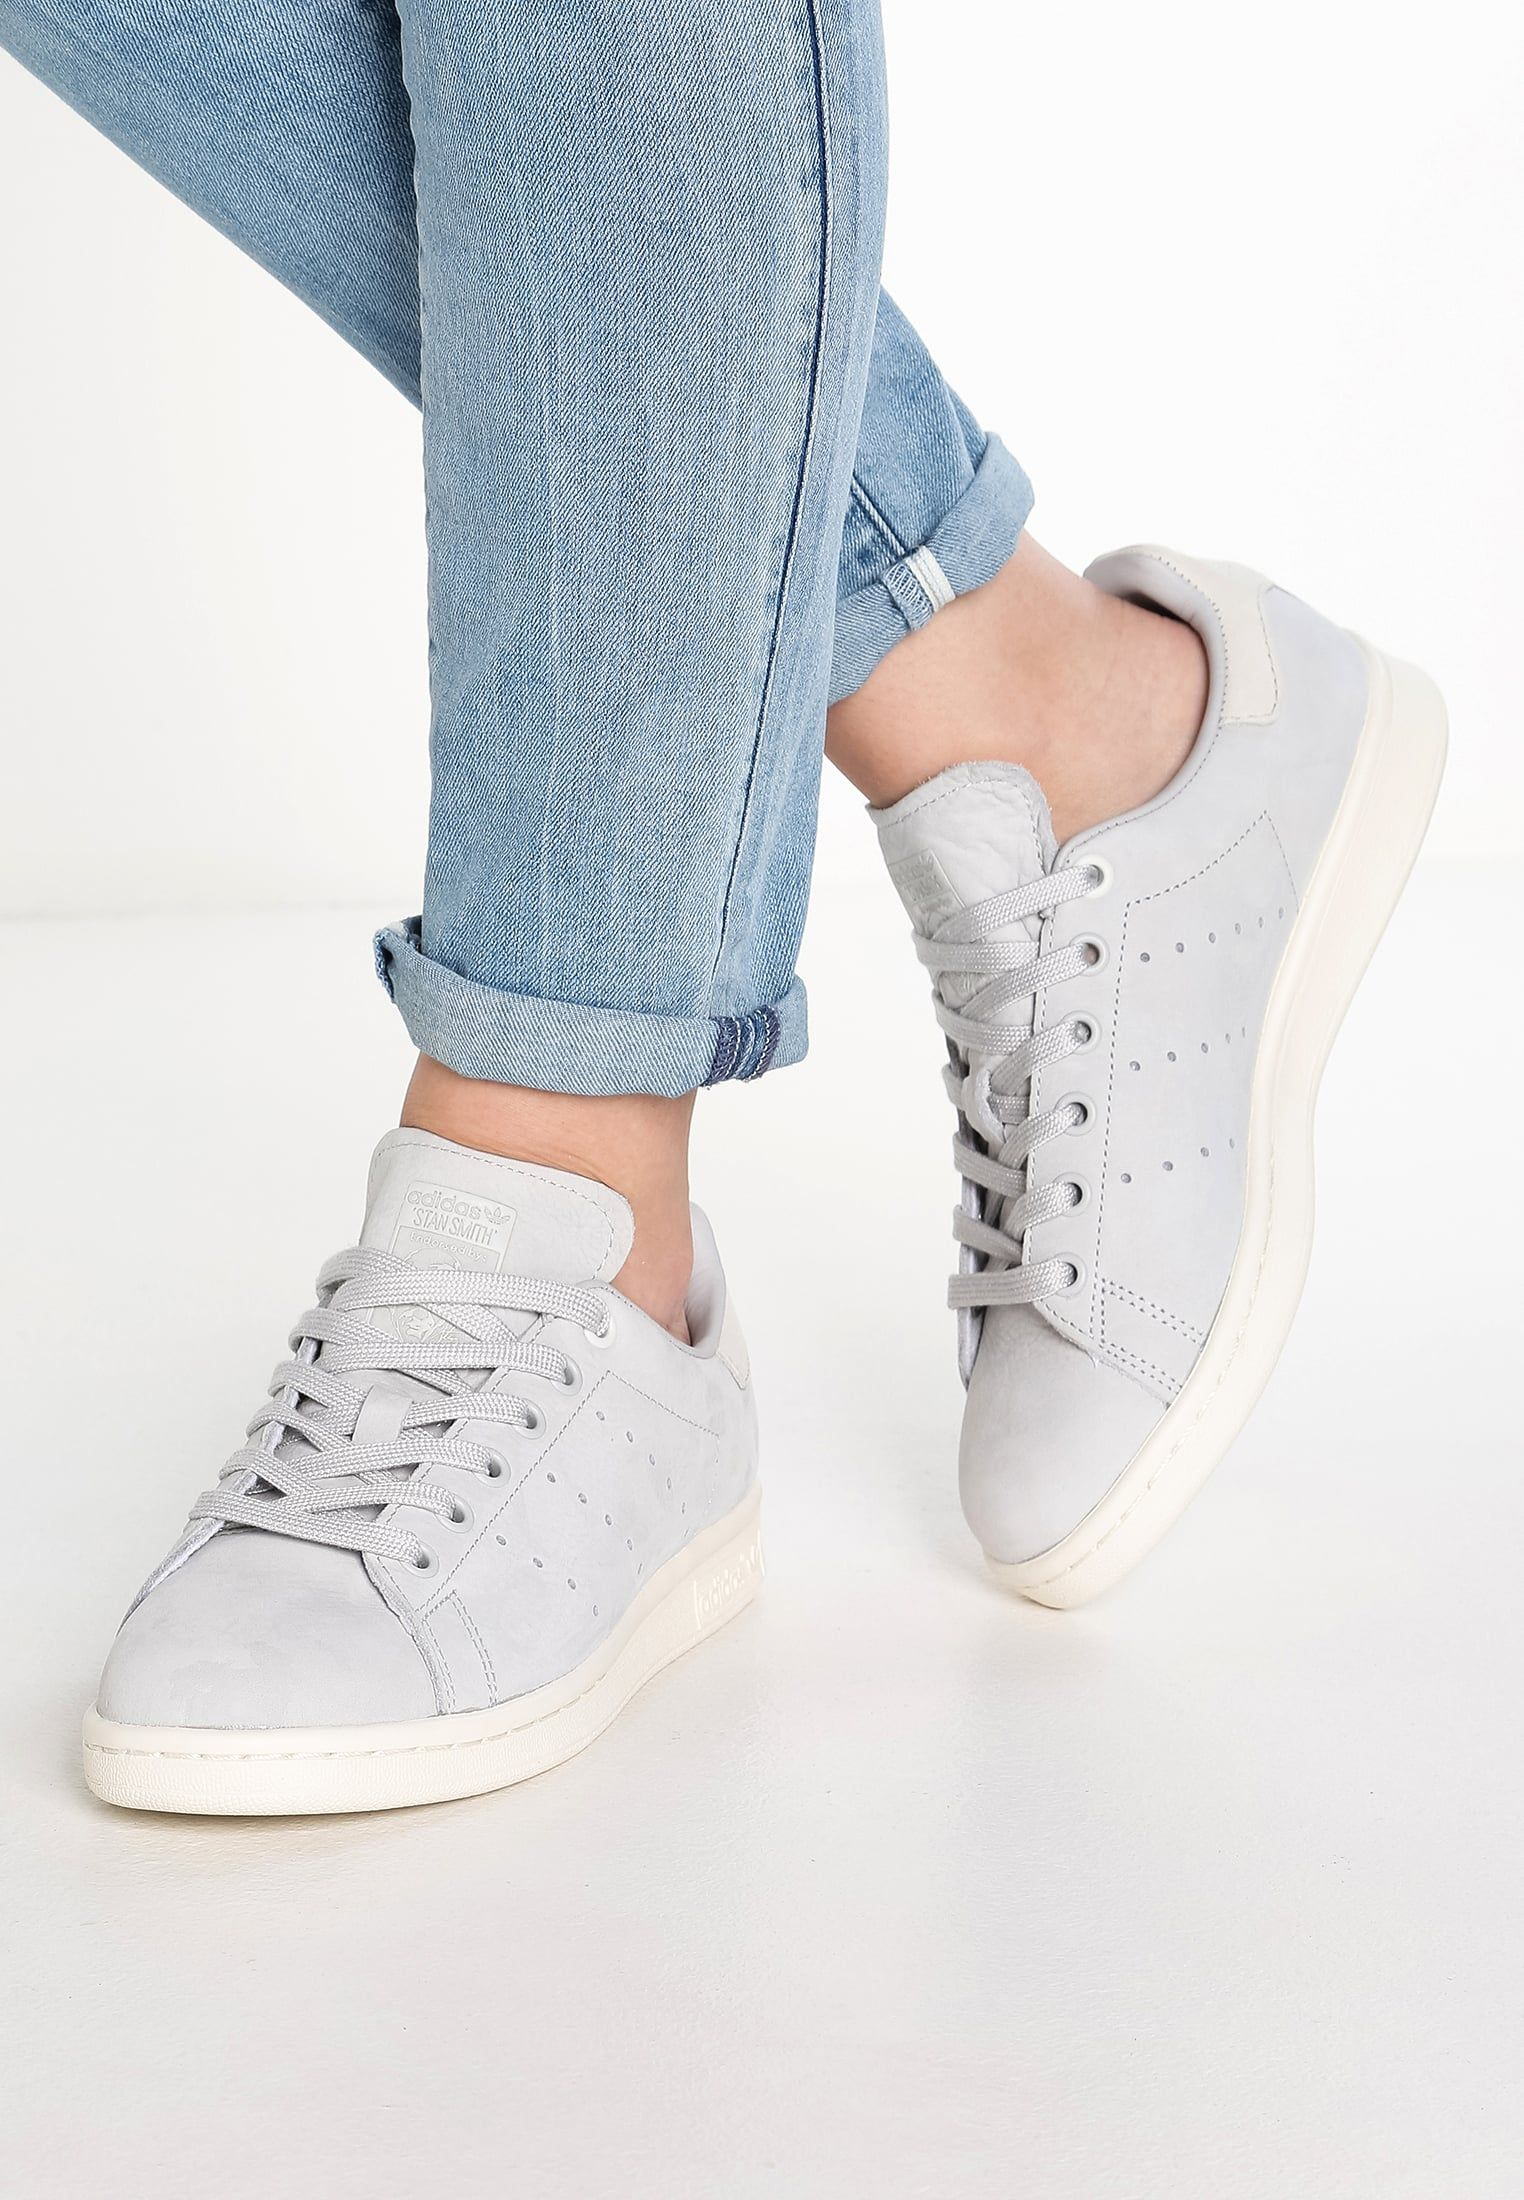 ZALANDO 110€ Chaussures adidas Originals STAN SMITH ...